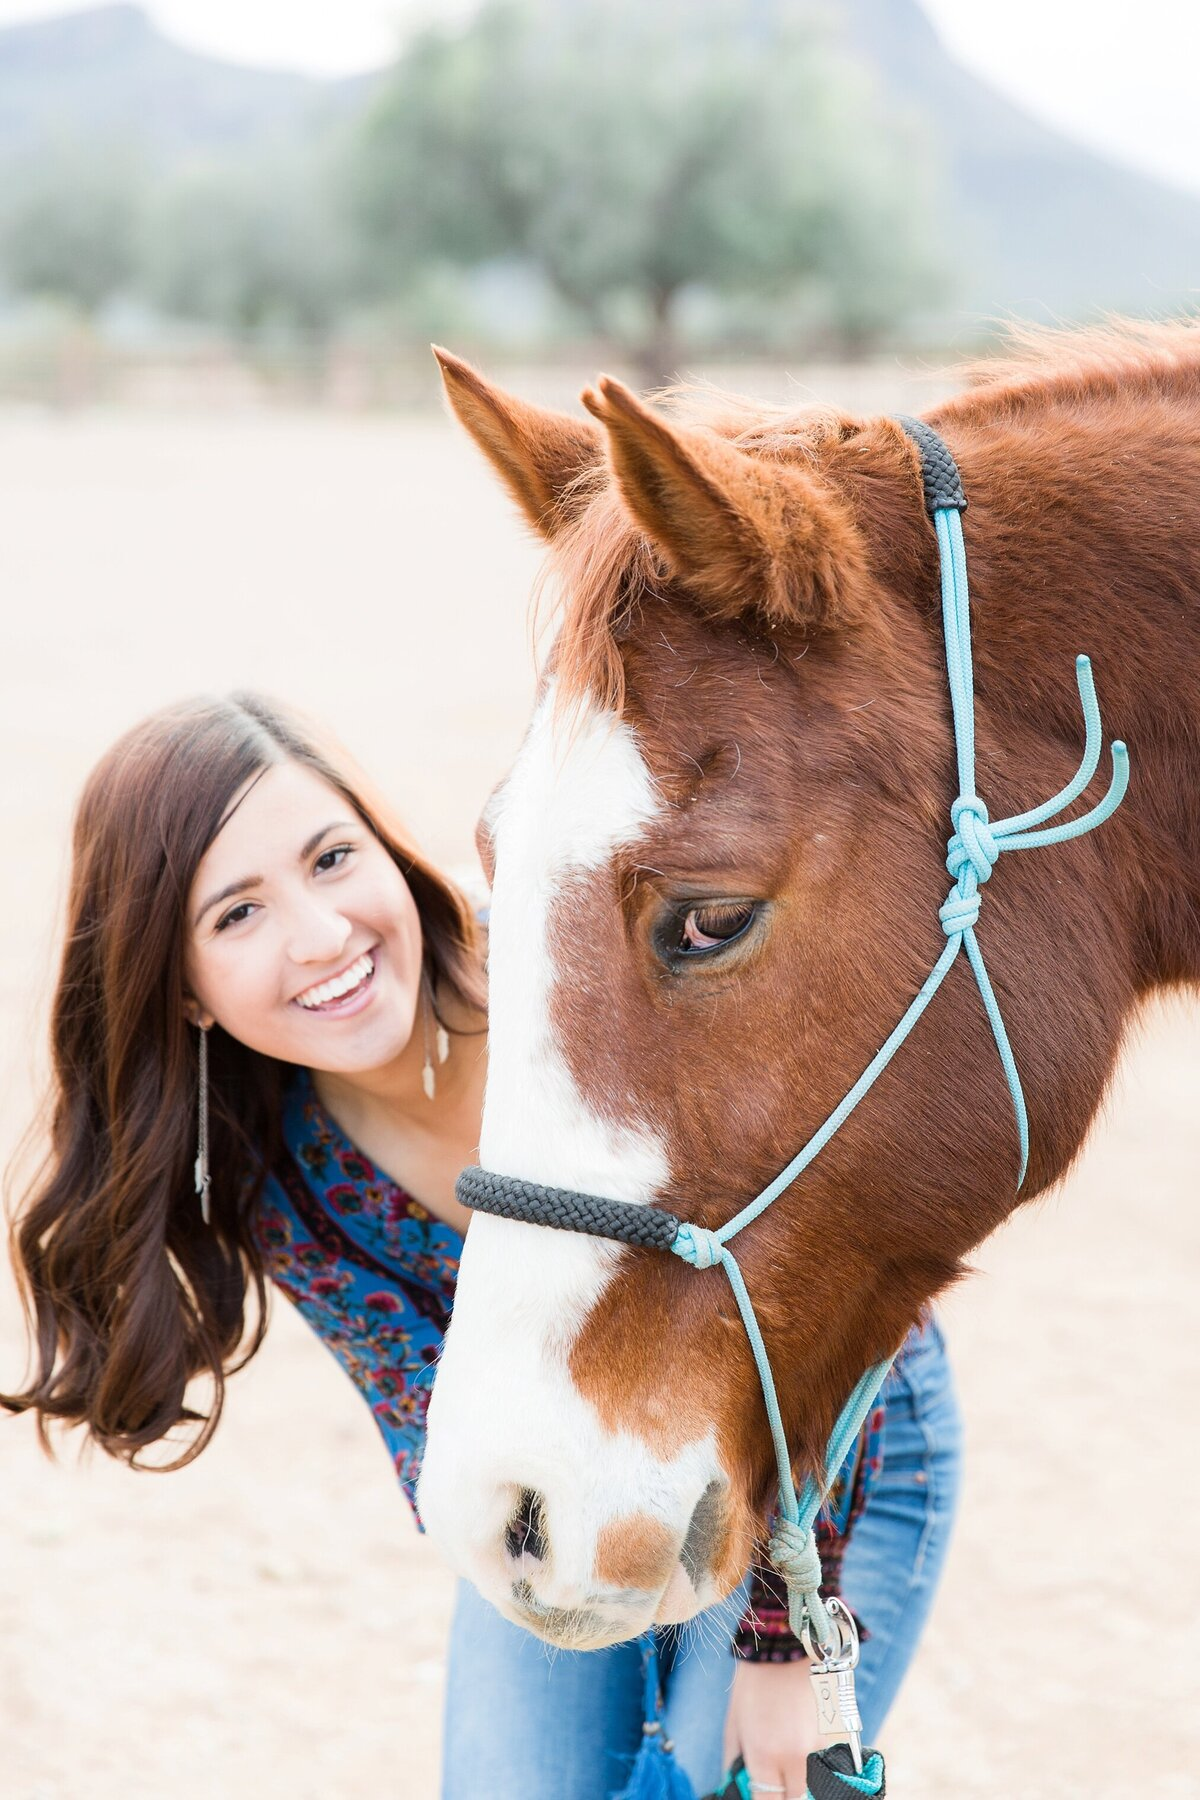 portrait of a girl and her horse, both looking at the camera